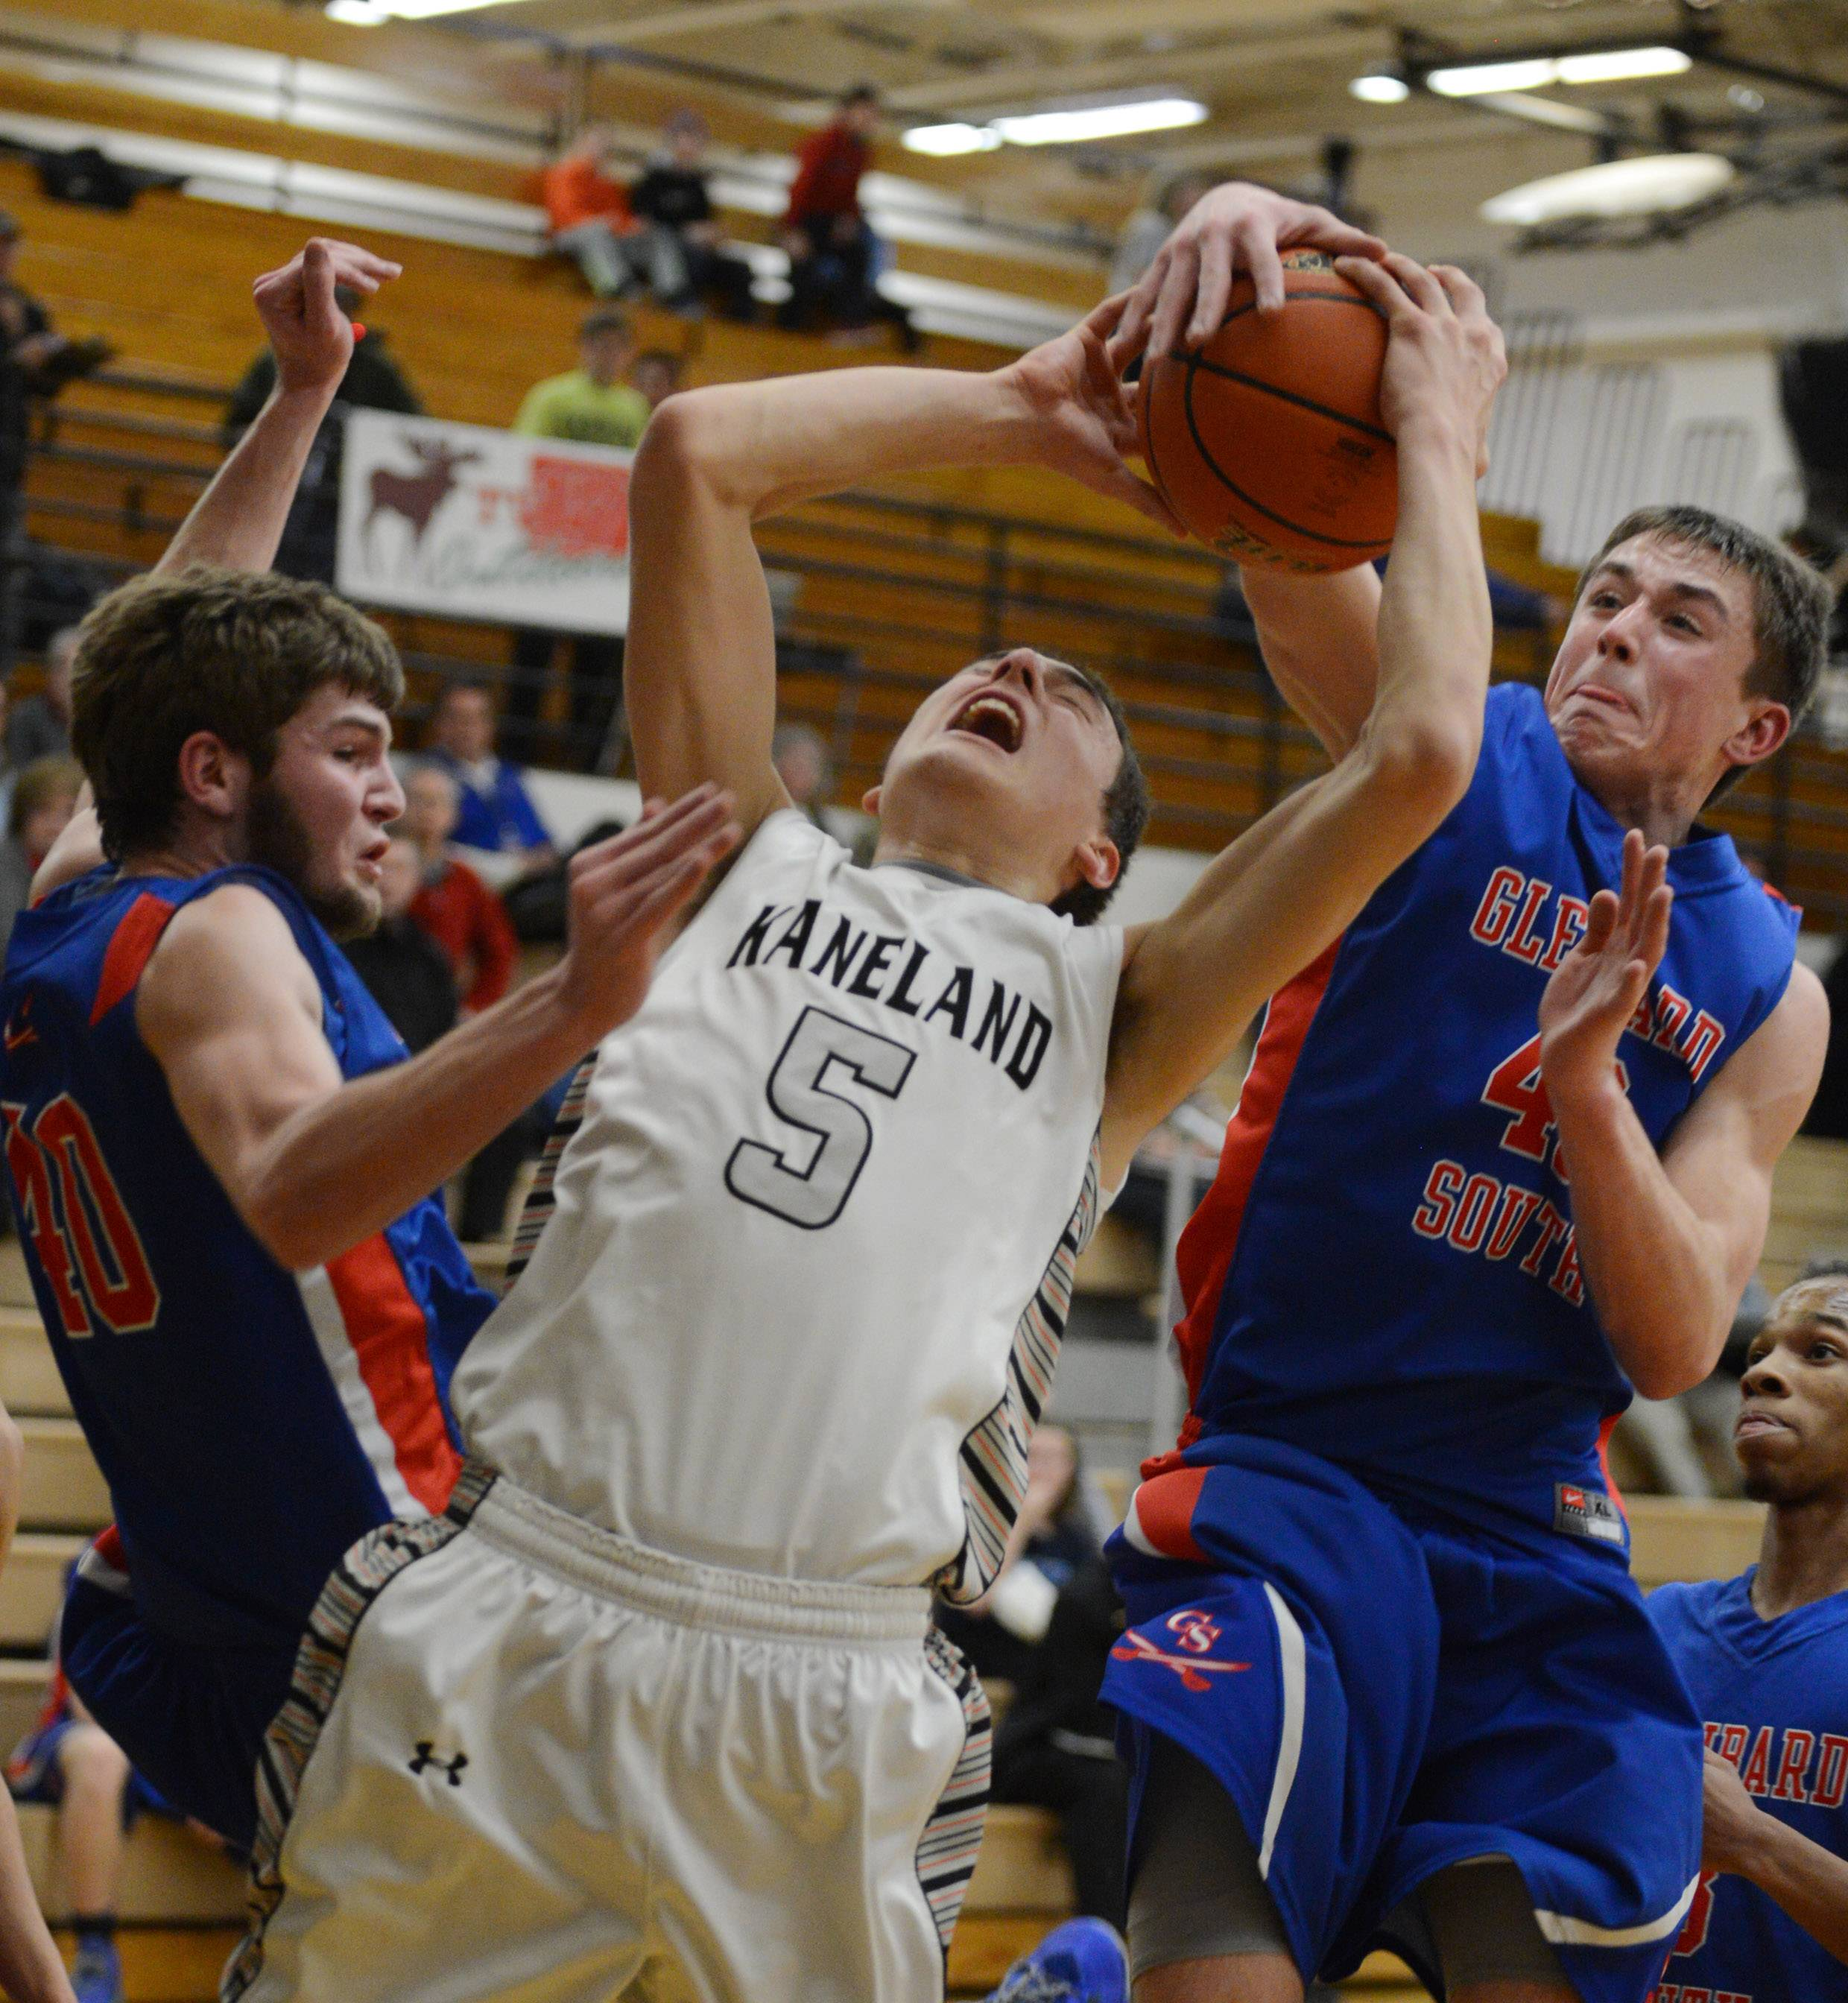 Kaneland's John Pruett (5) is fouled by Glenbard South's Billy Bair (42) during Tuesday's regional action in Kaneland.